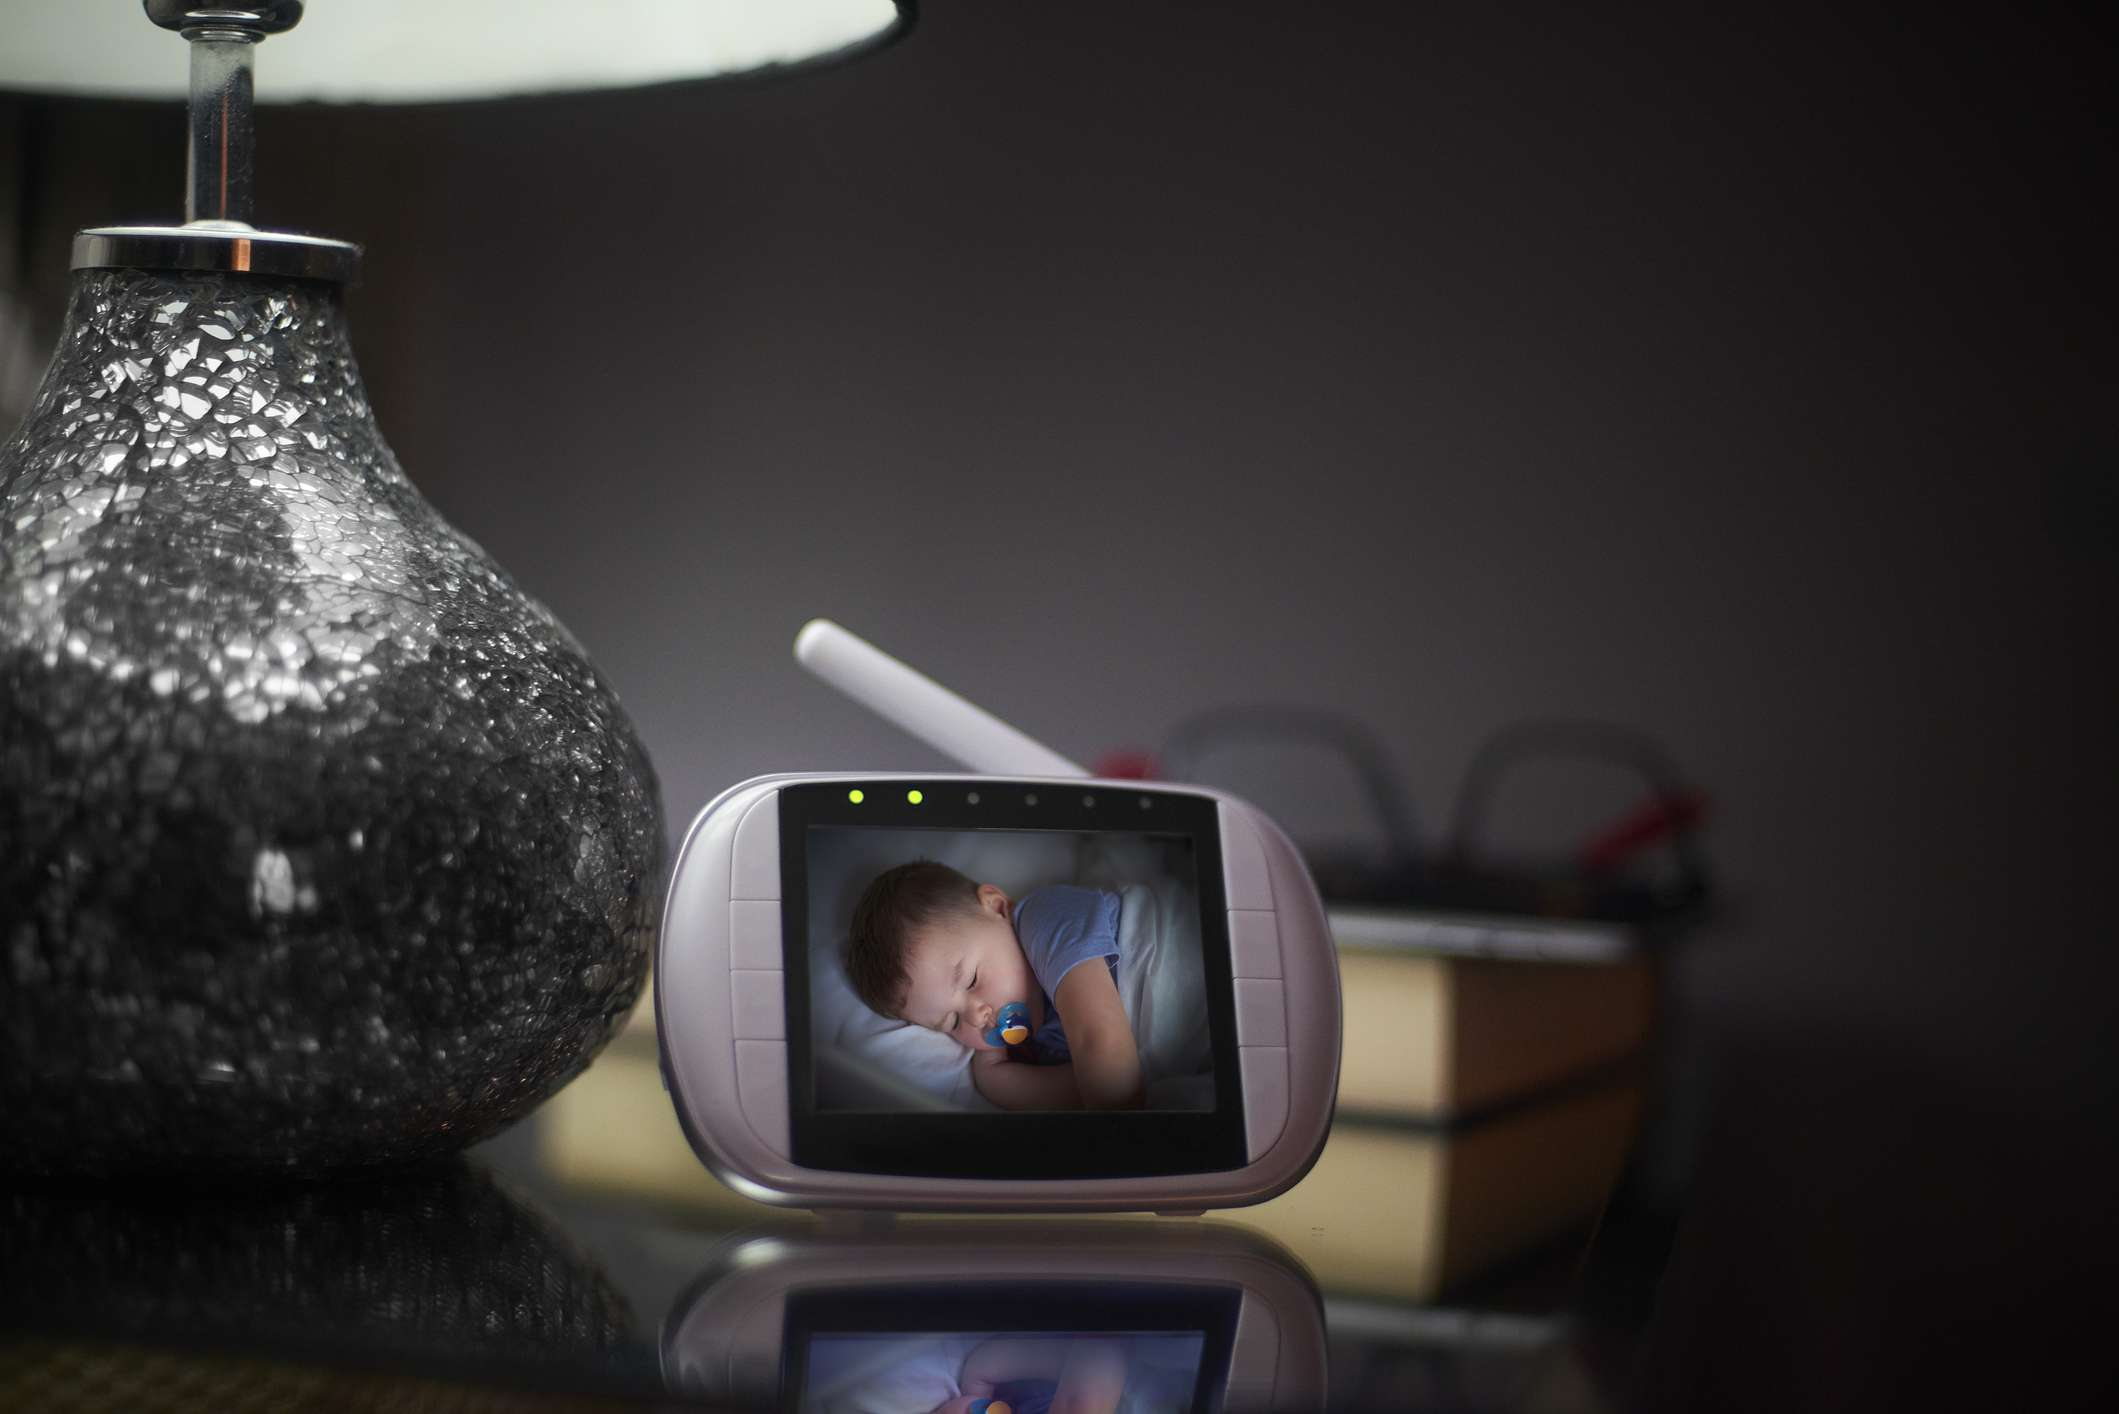 Baby Monitor on bedside table